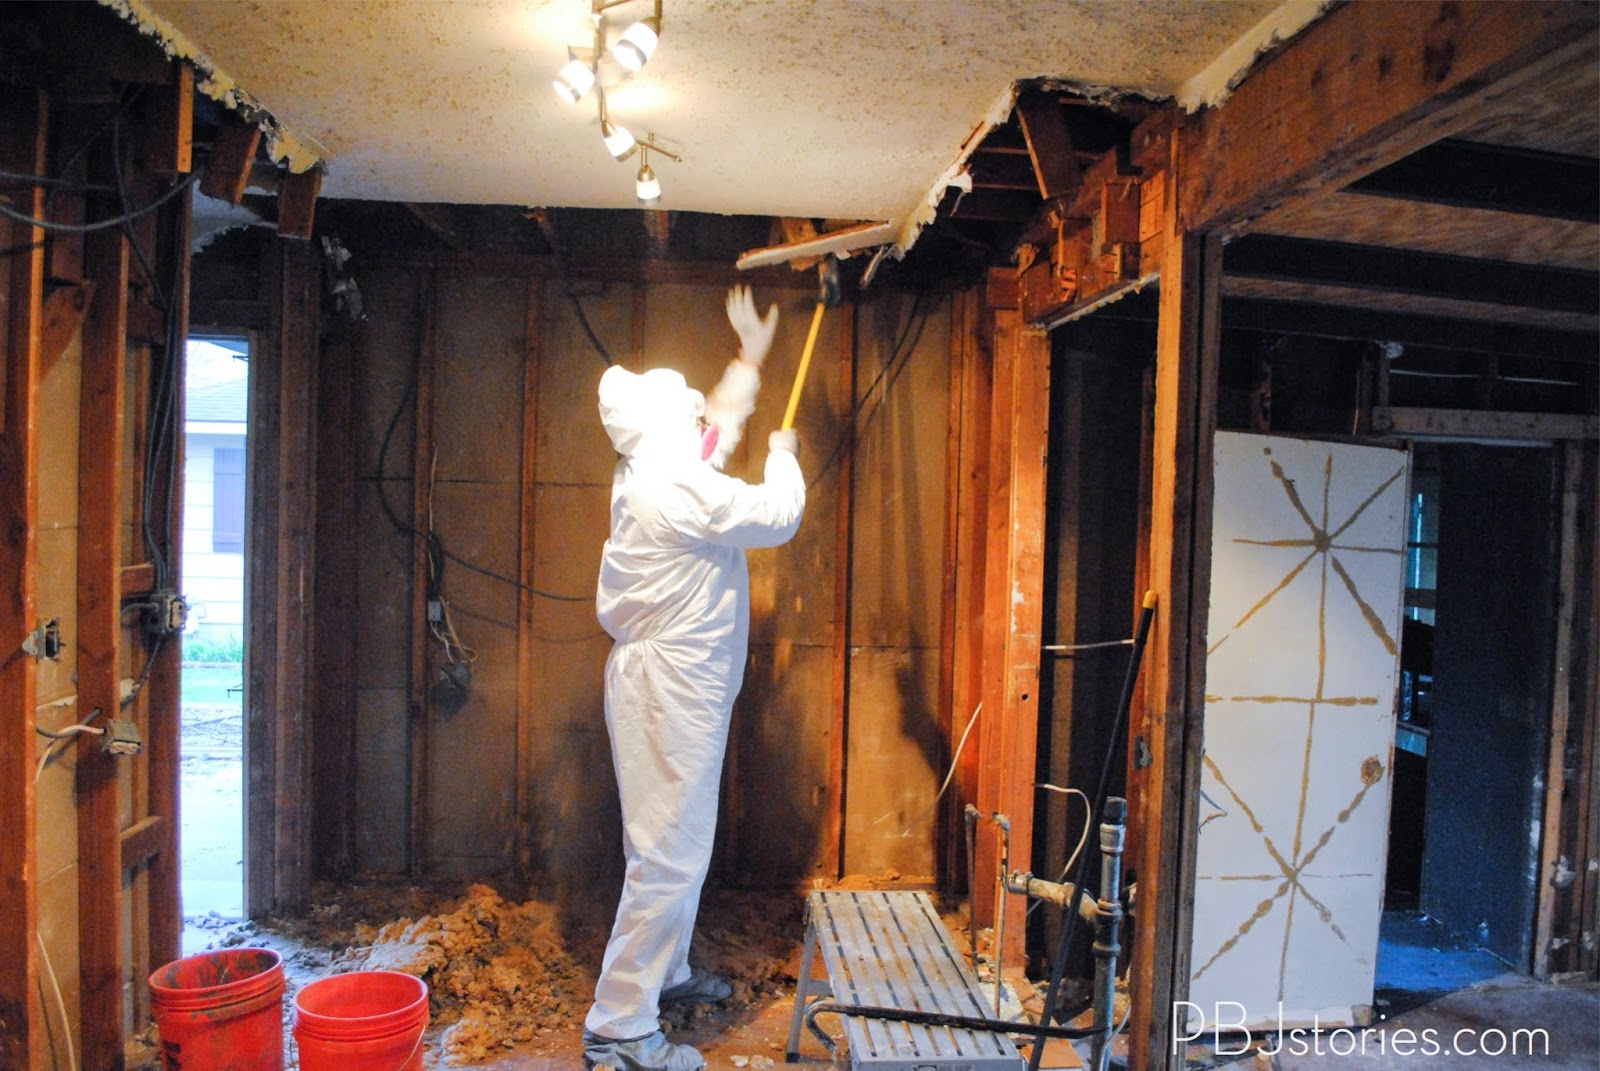 taking down a ceiling | PBJstories.com